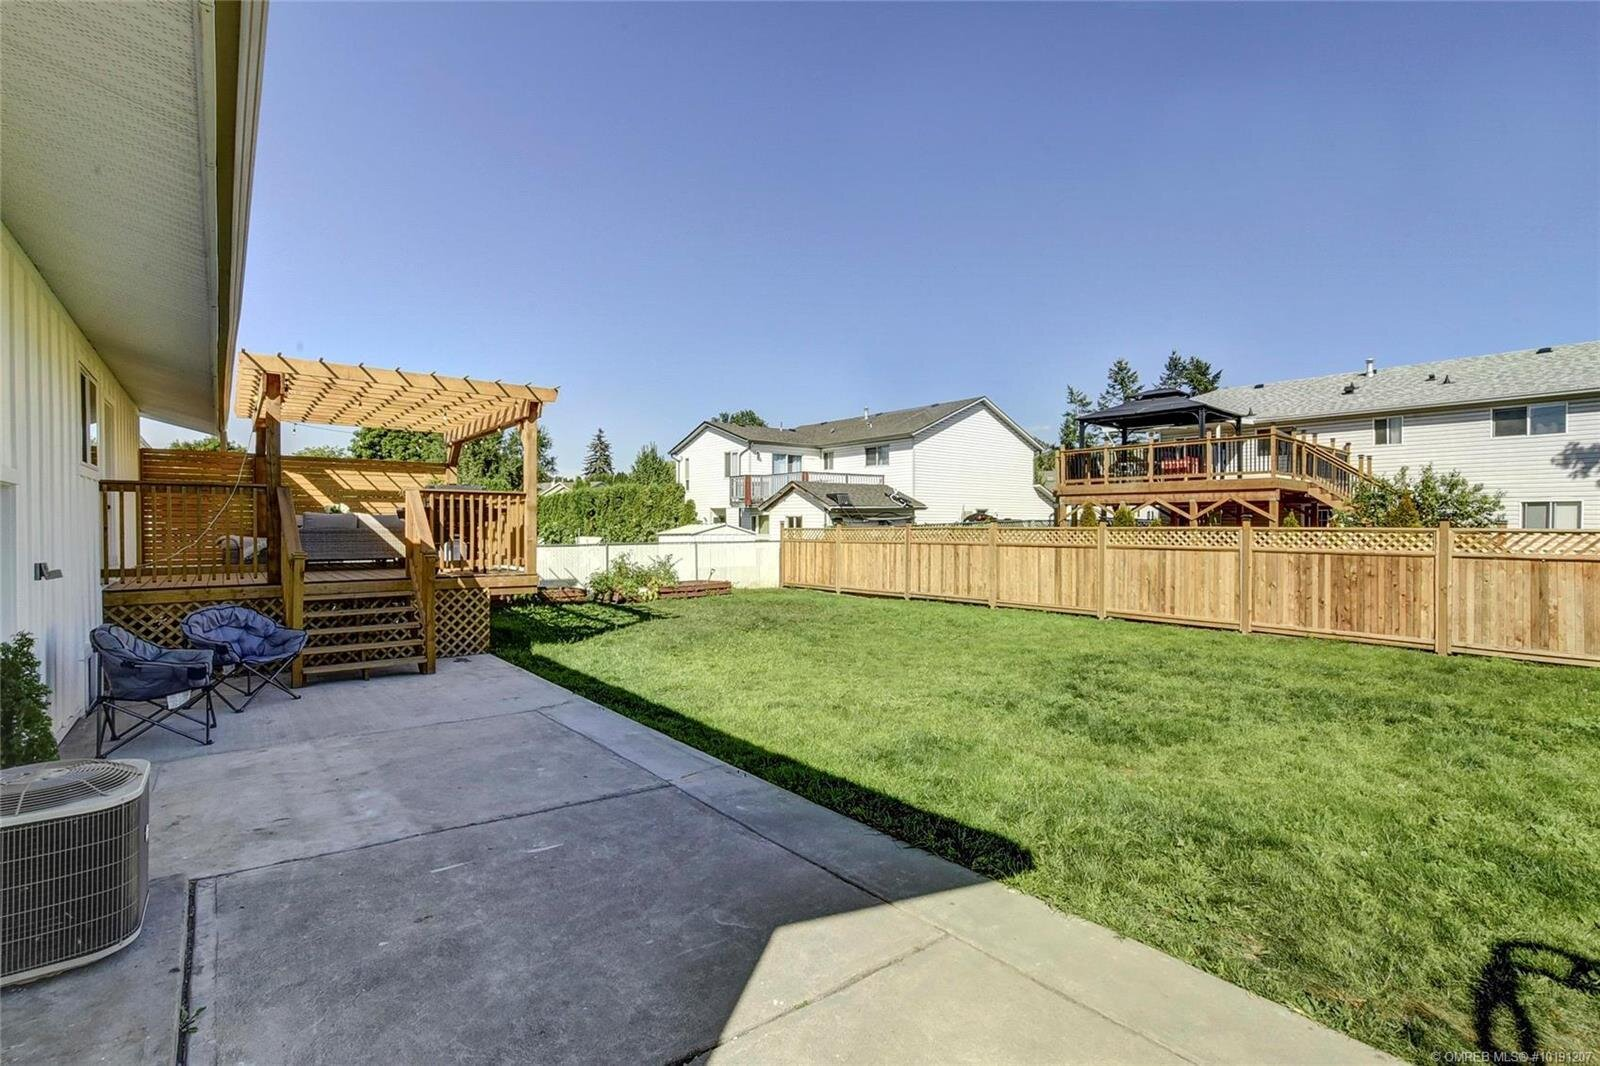 505-hollywood-road-south-farmhouse-inspired-family-home-kelowna-rutland-exterior-backyard-2.jpg